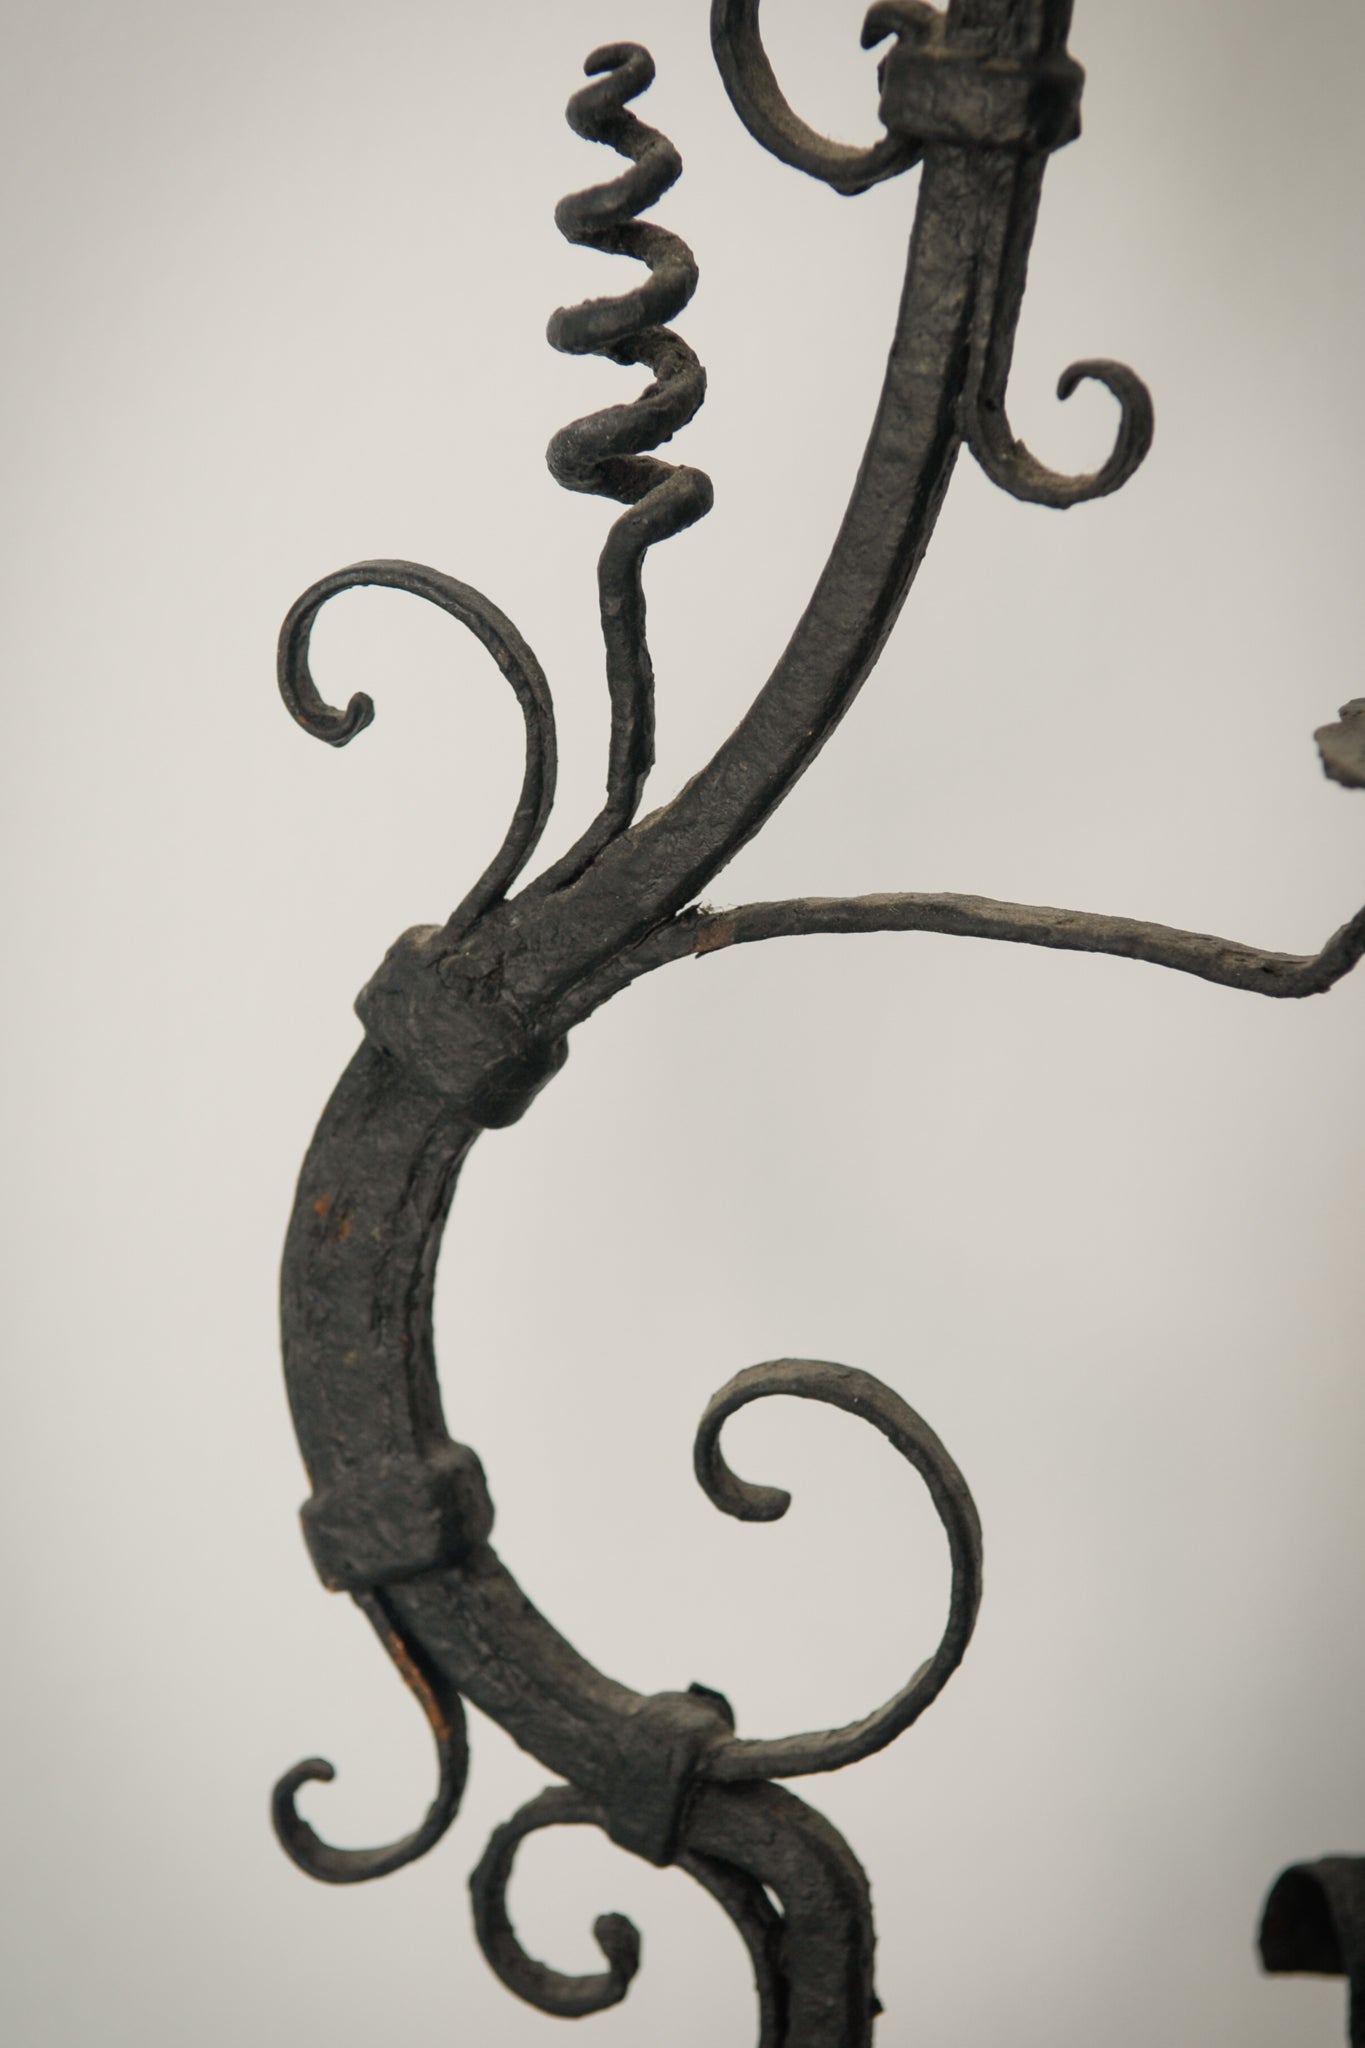 Pair of Wrought Iron Antique Washbowl Stands_Detail 2